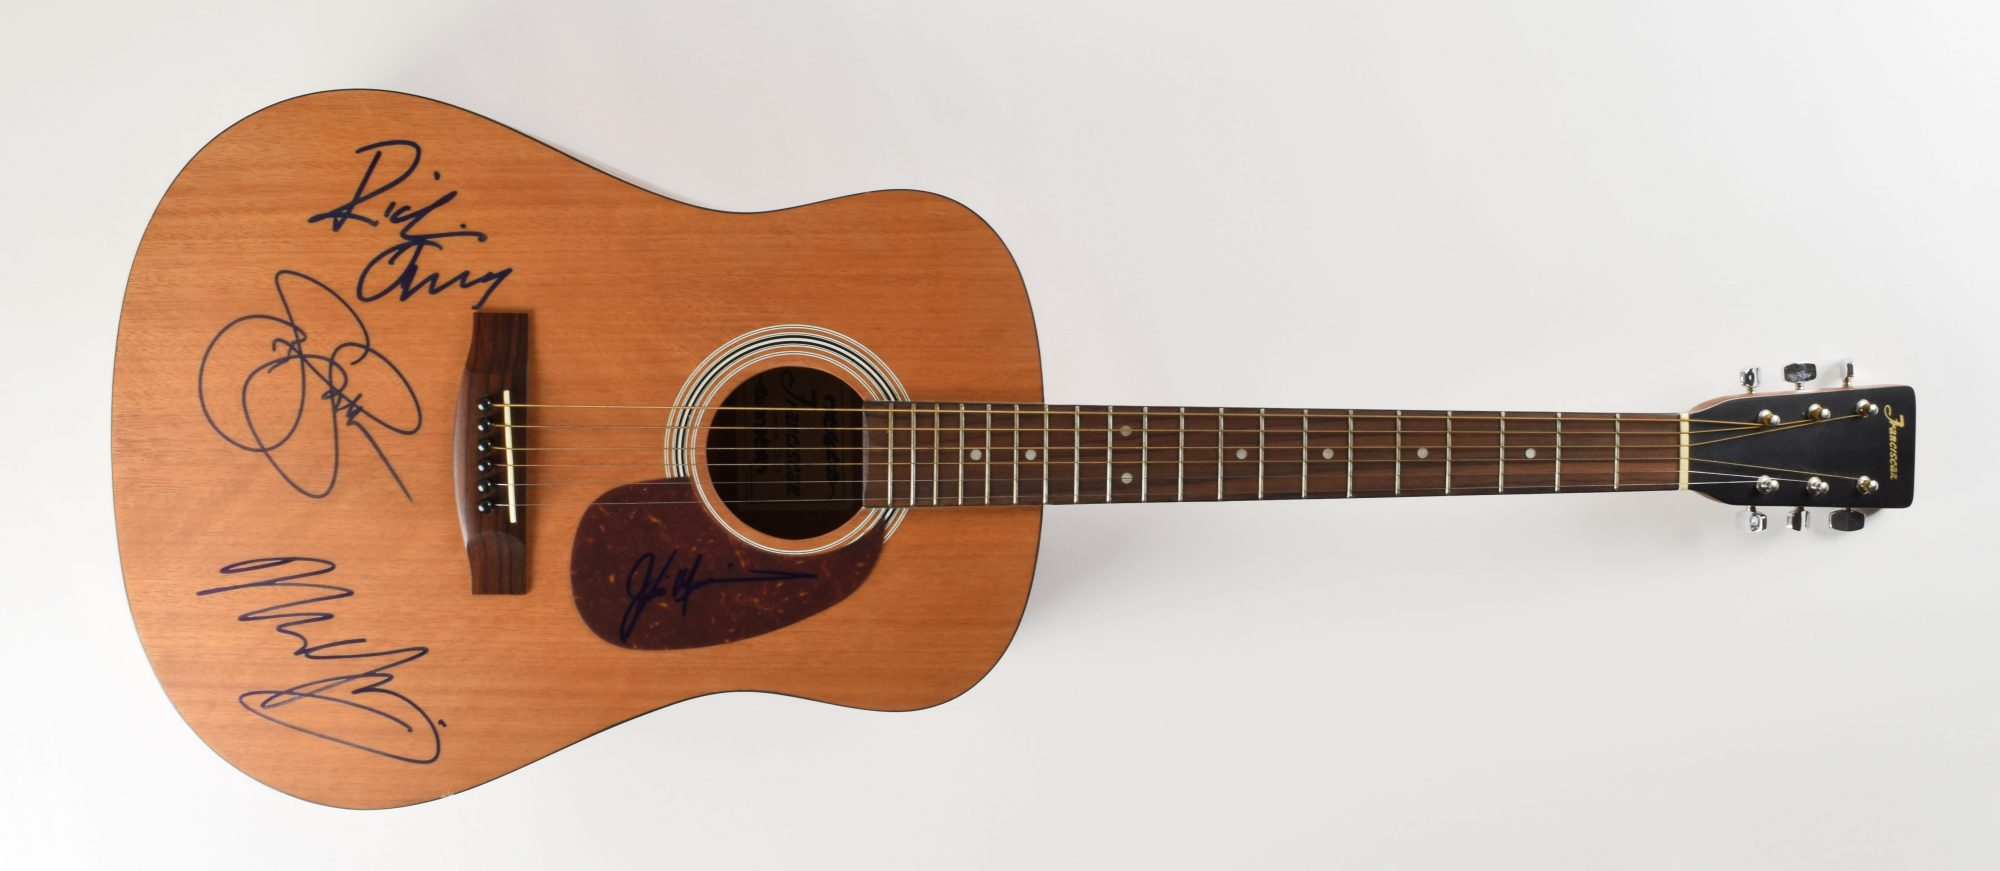 Franciscan natural-finish acoustic guitar autograph Neil Young Stephen Stills Richie Furay Jim Messina John Brennan Collection RR Auction